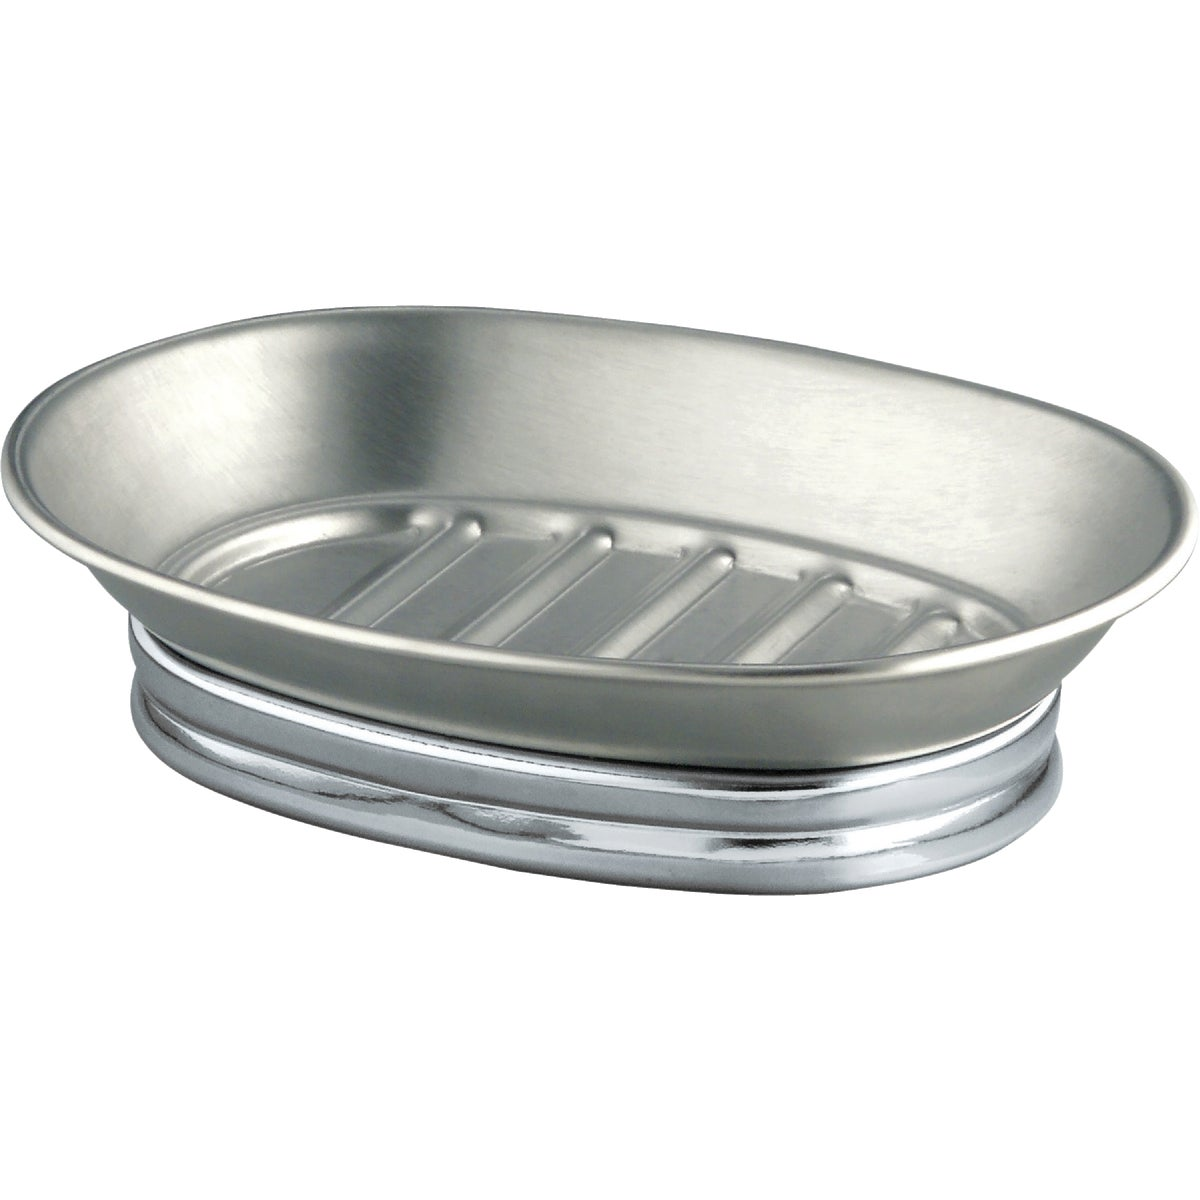 YORK METAL SOAP DISH